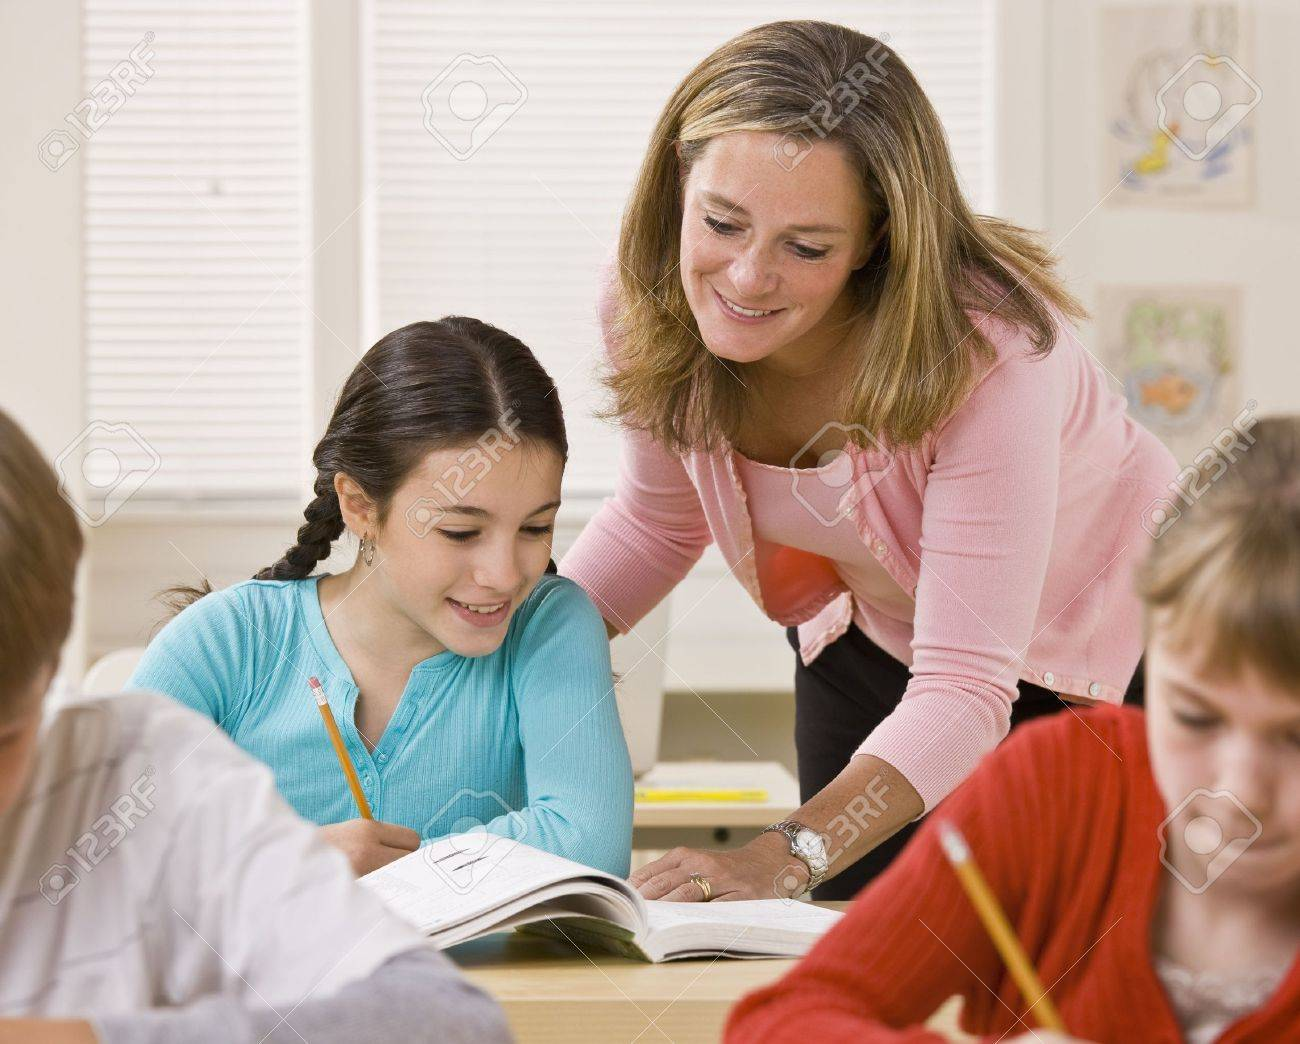 teaching assistant coursework help